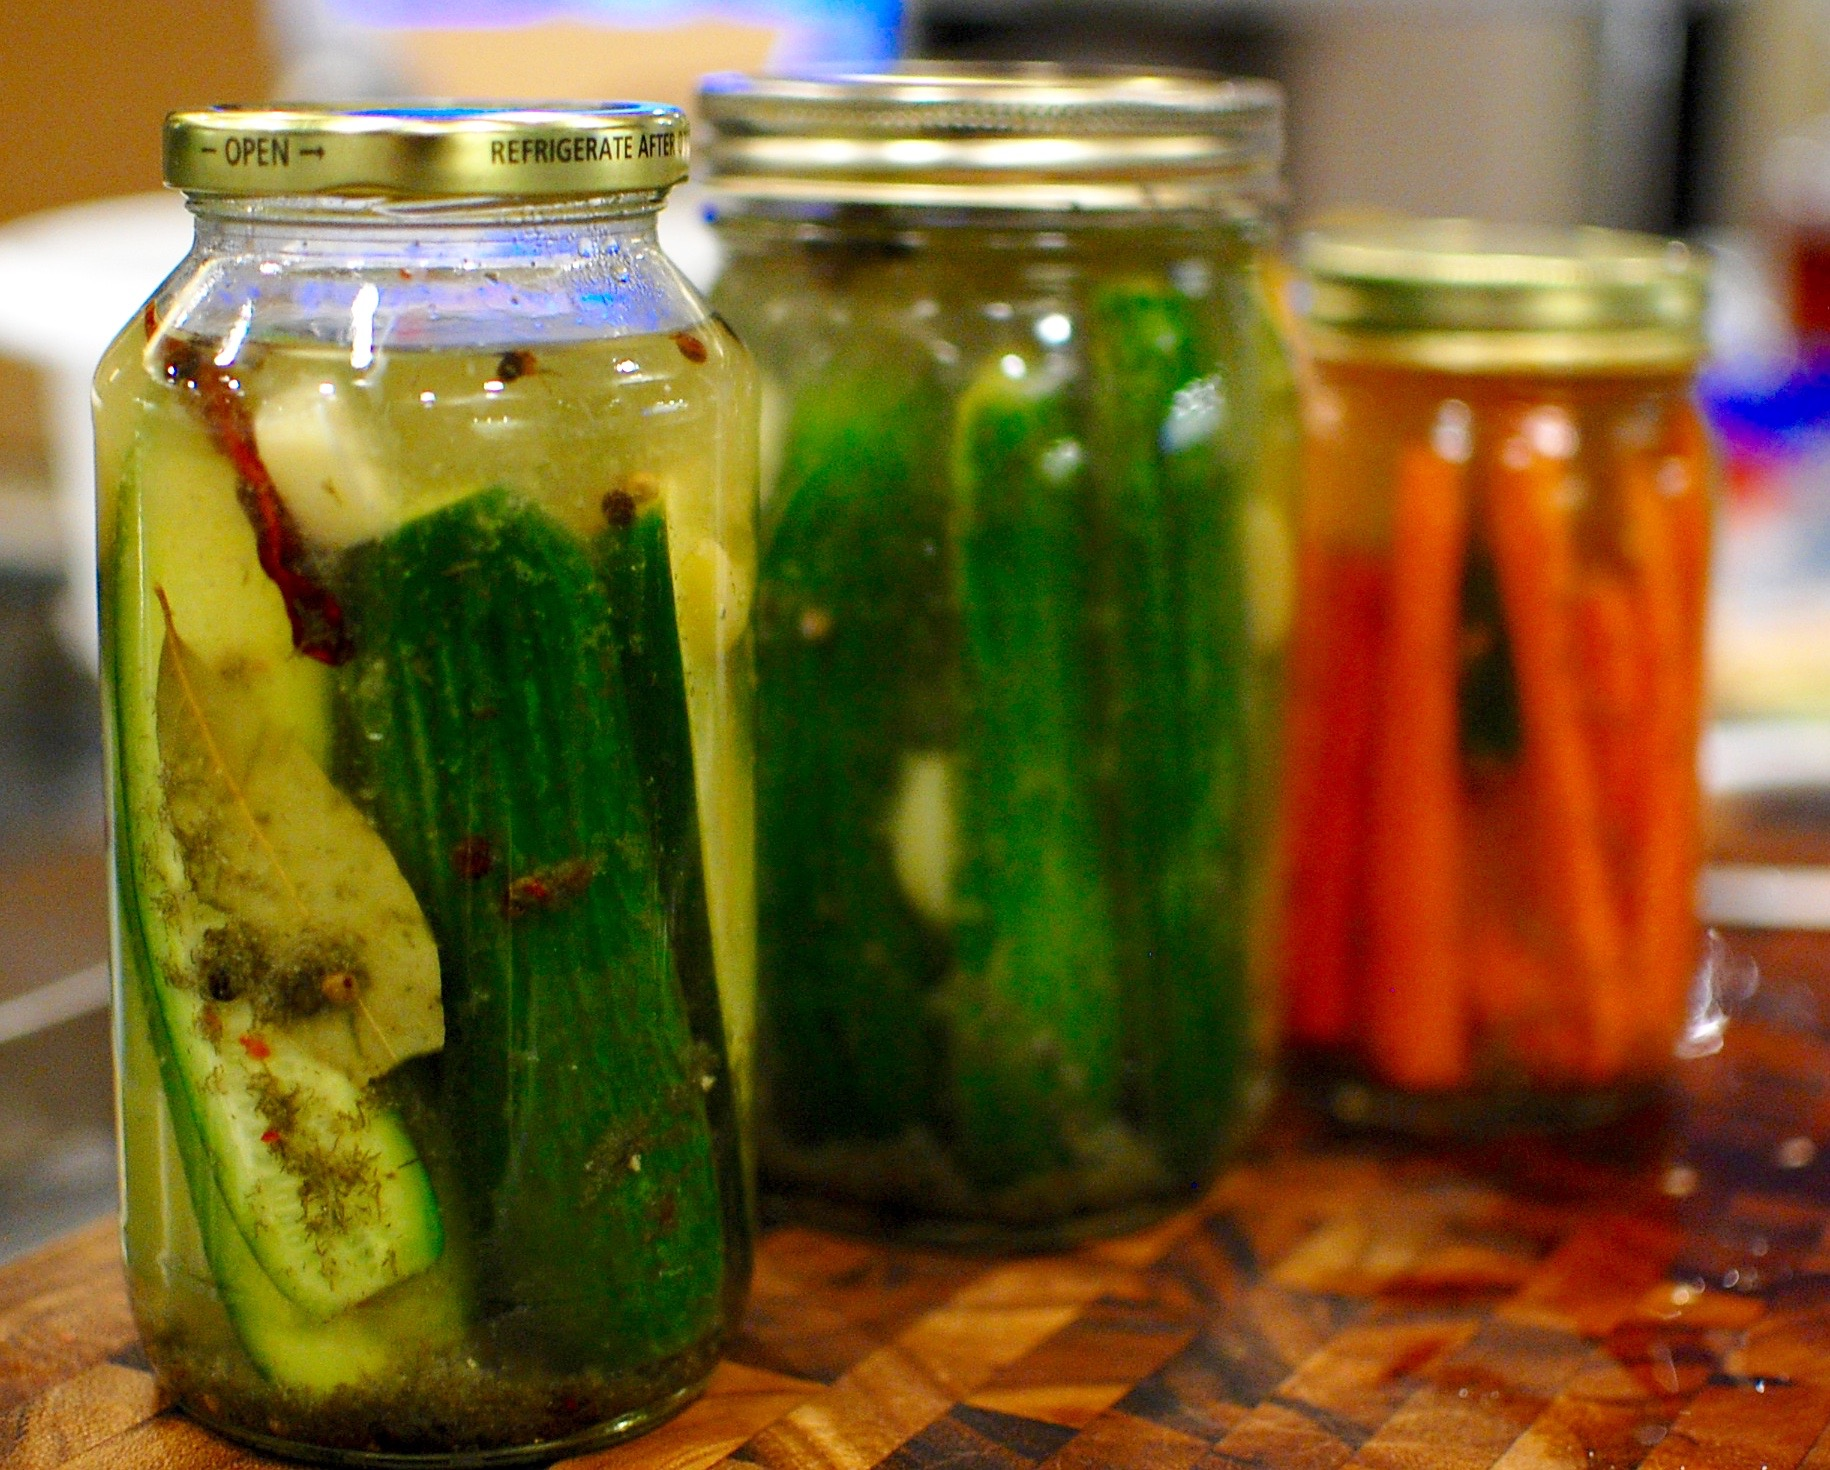 Homemade Refrigerator Pickles: Spicy Dill & Garlic Cucumber — The ...